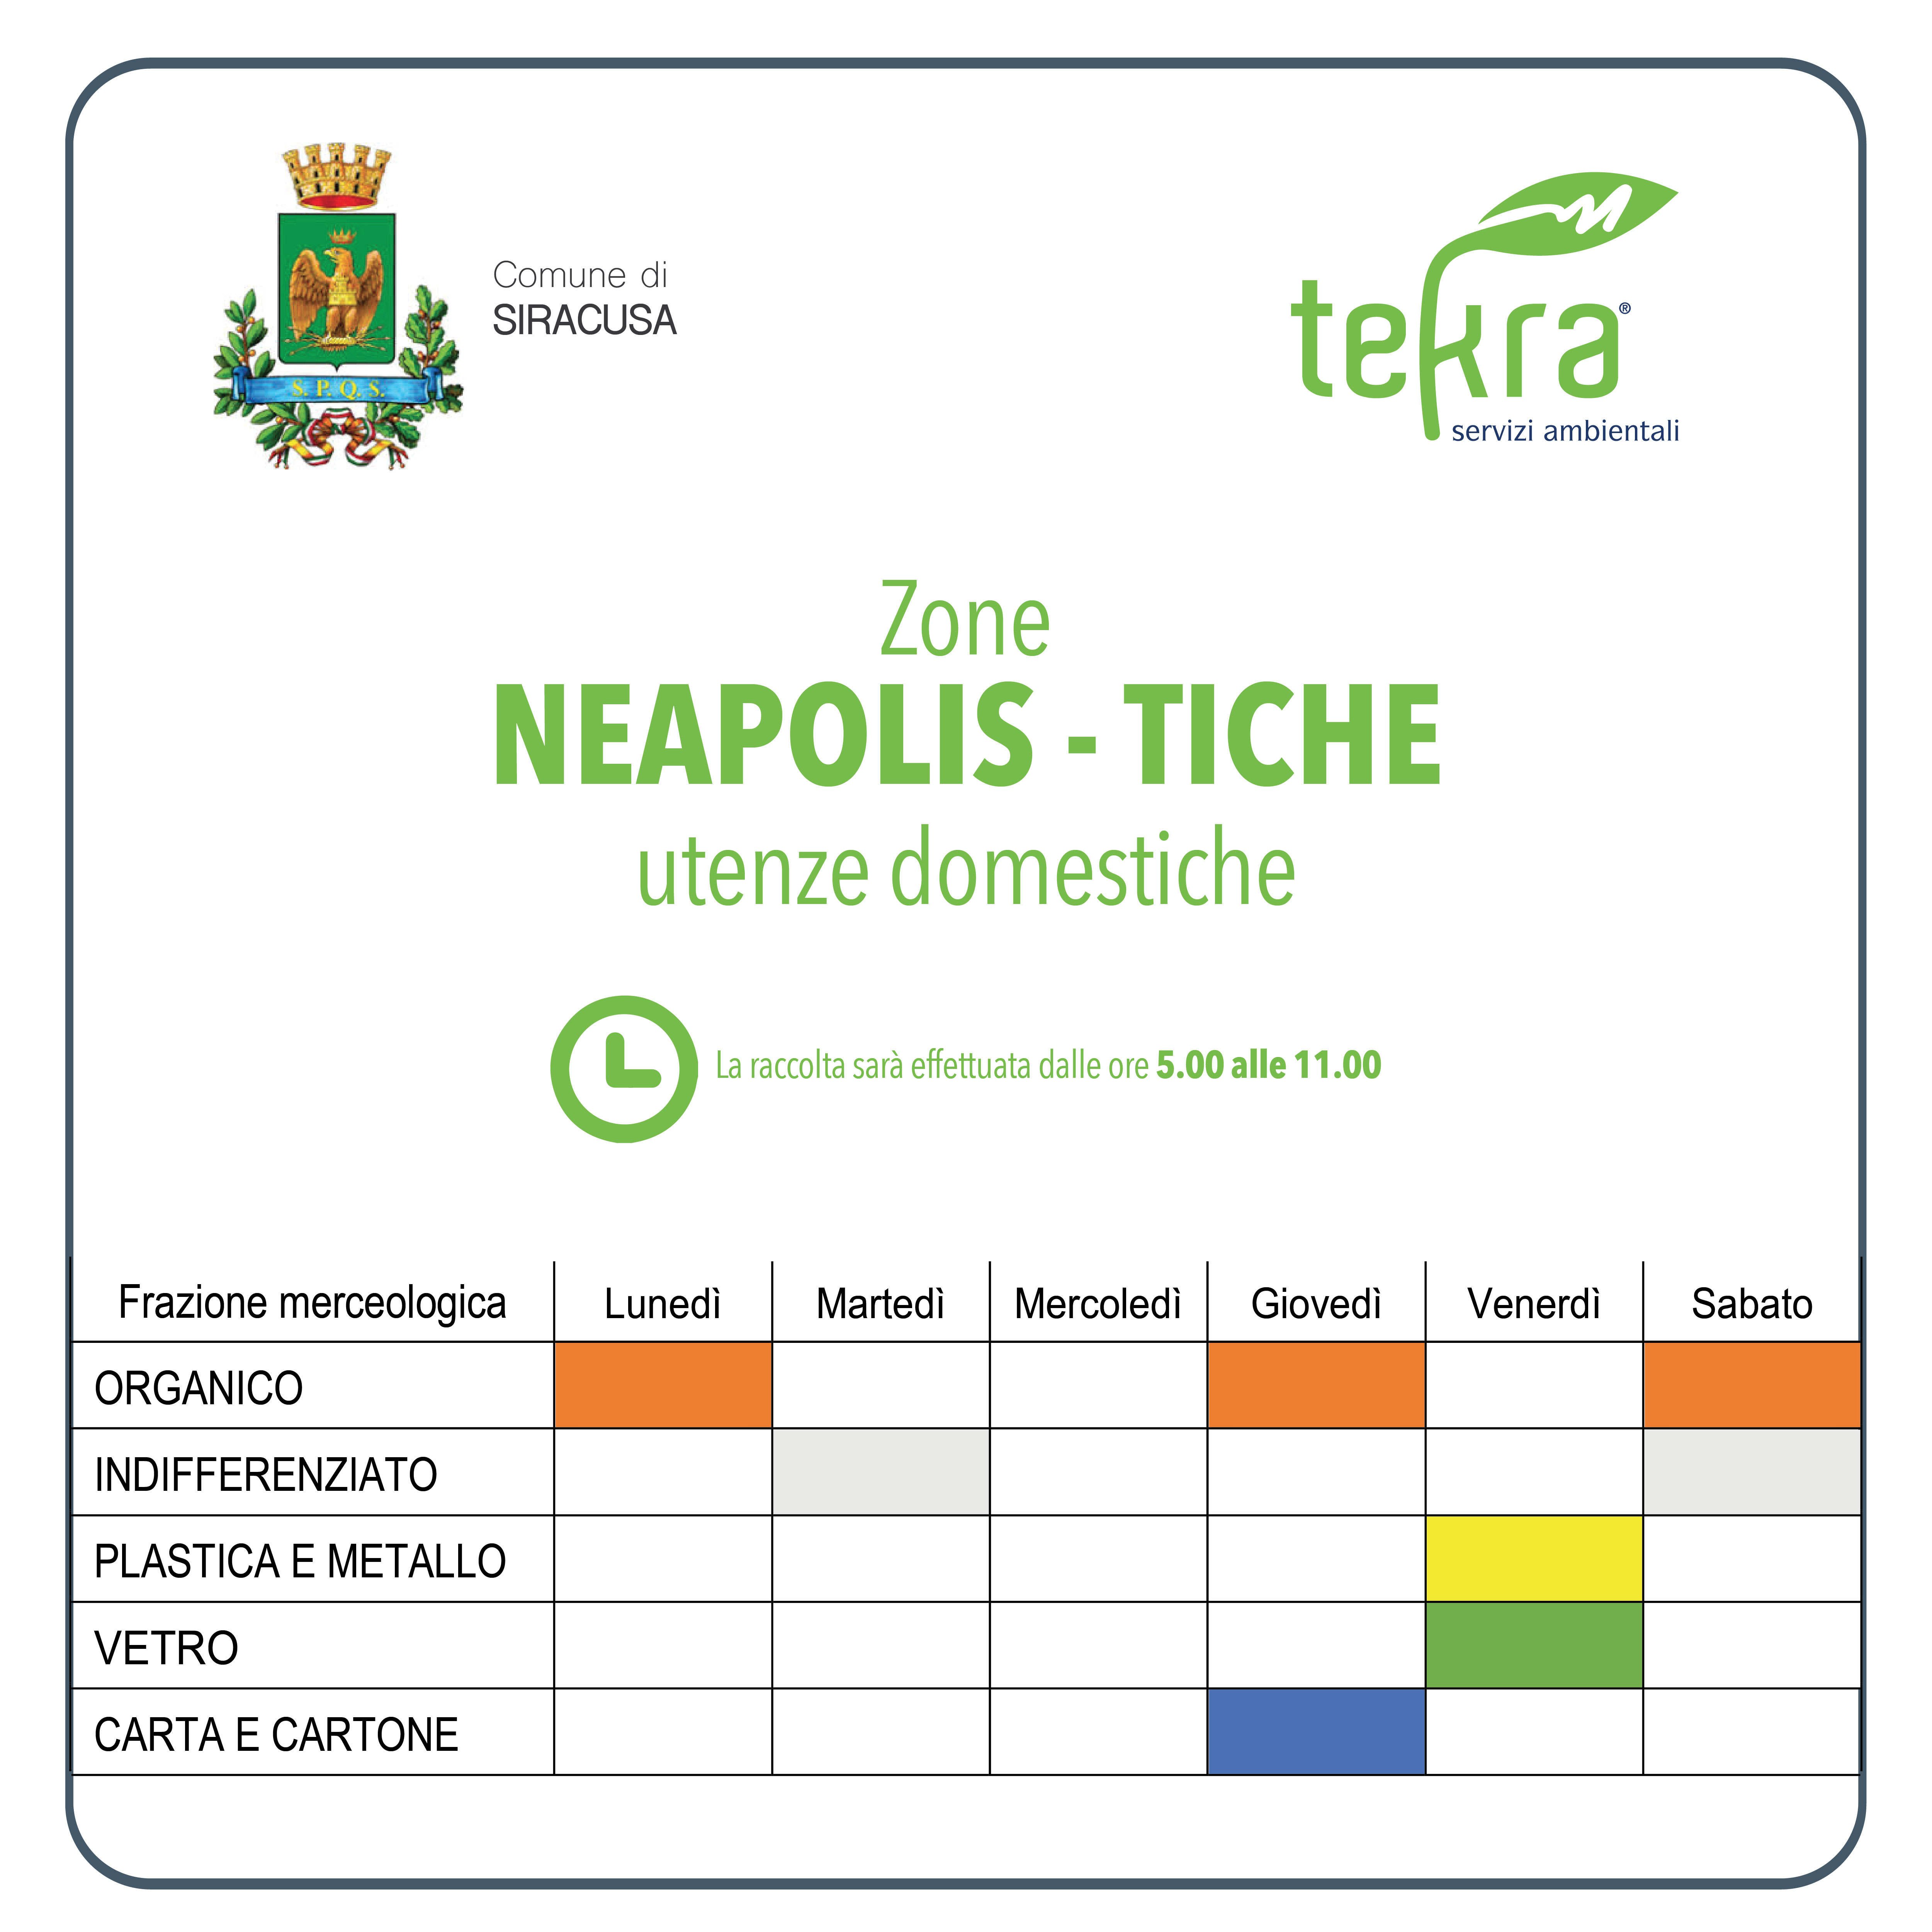 TEKRA social Siracusa Neapolis Tiche UD